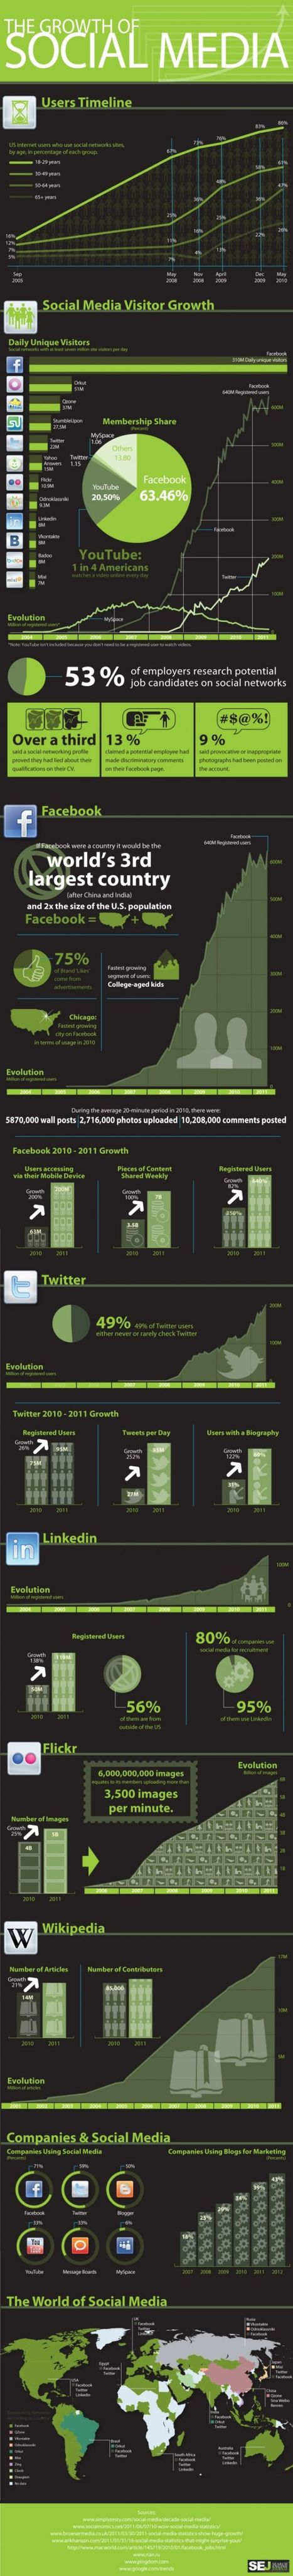 Infographic: Social media is growing at an astonishing rate | Articles | socialmedia_nonprofits | Scoop.it